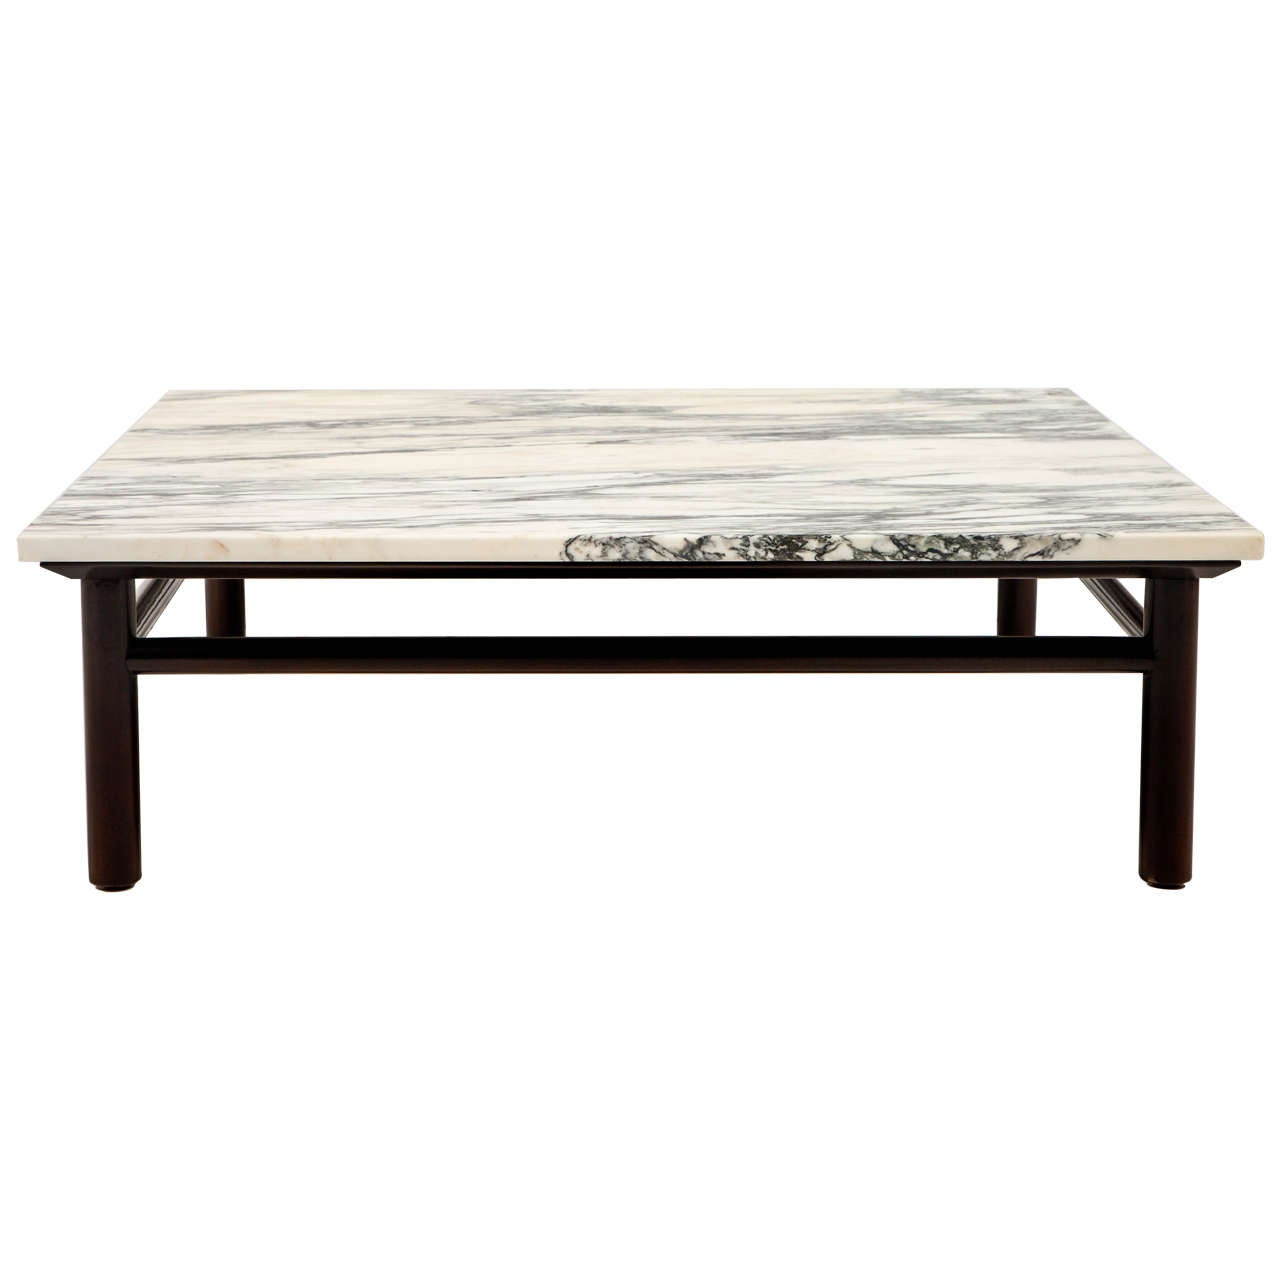 Marble Coffee Table For Sale Singapore: Robsjohn-Gibbings Walnut And Marble Coffee Table For Sale